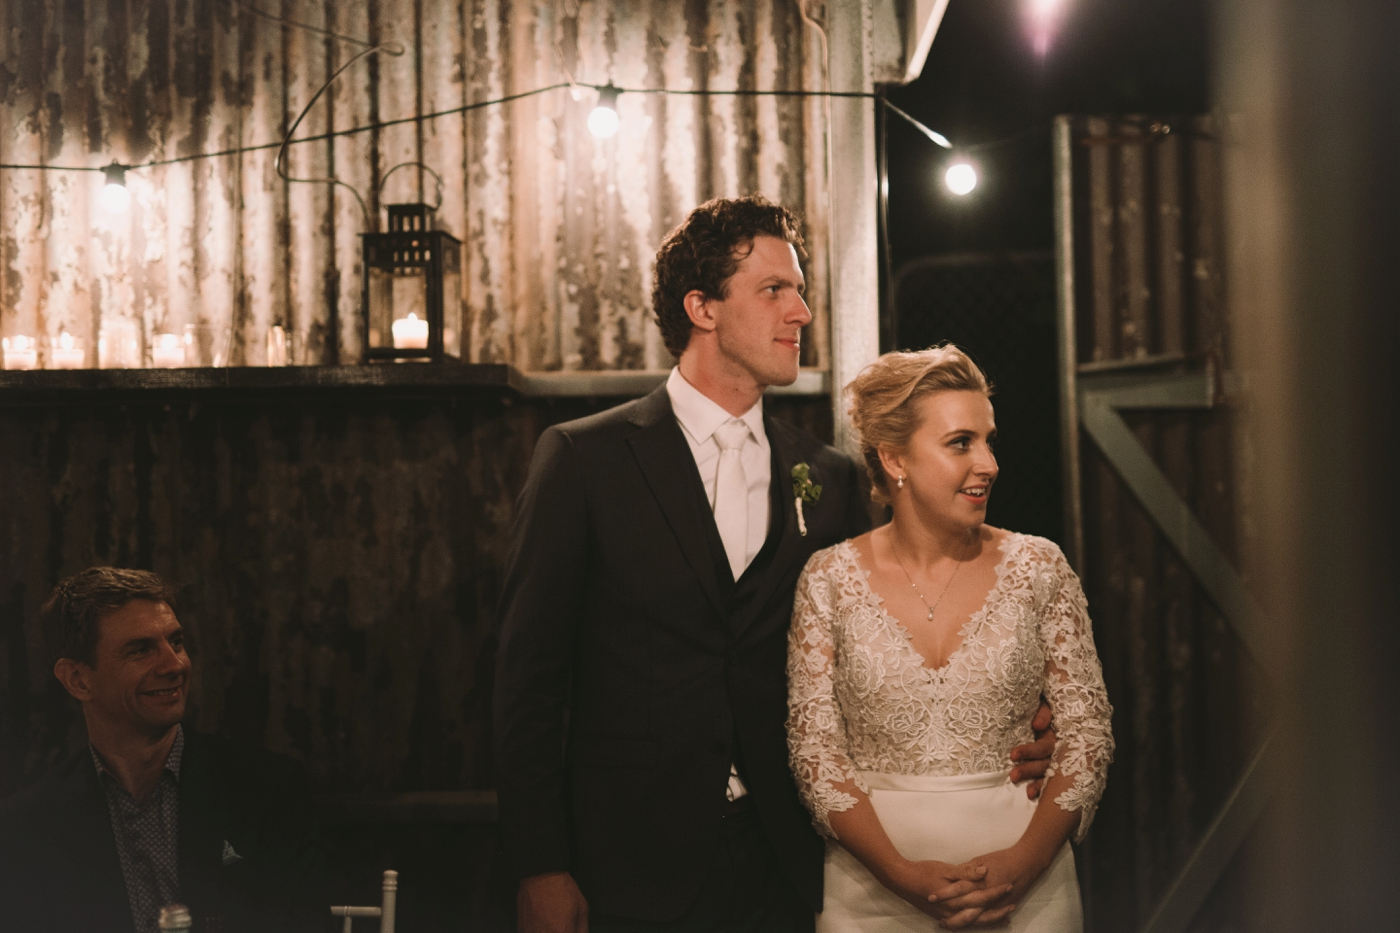 Penny and Michael - Adelaide Hills Wedding Photographer - Natural wedding photography in Adelaide - Katherine Schultz_0094.jpg